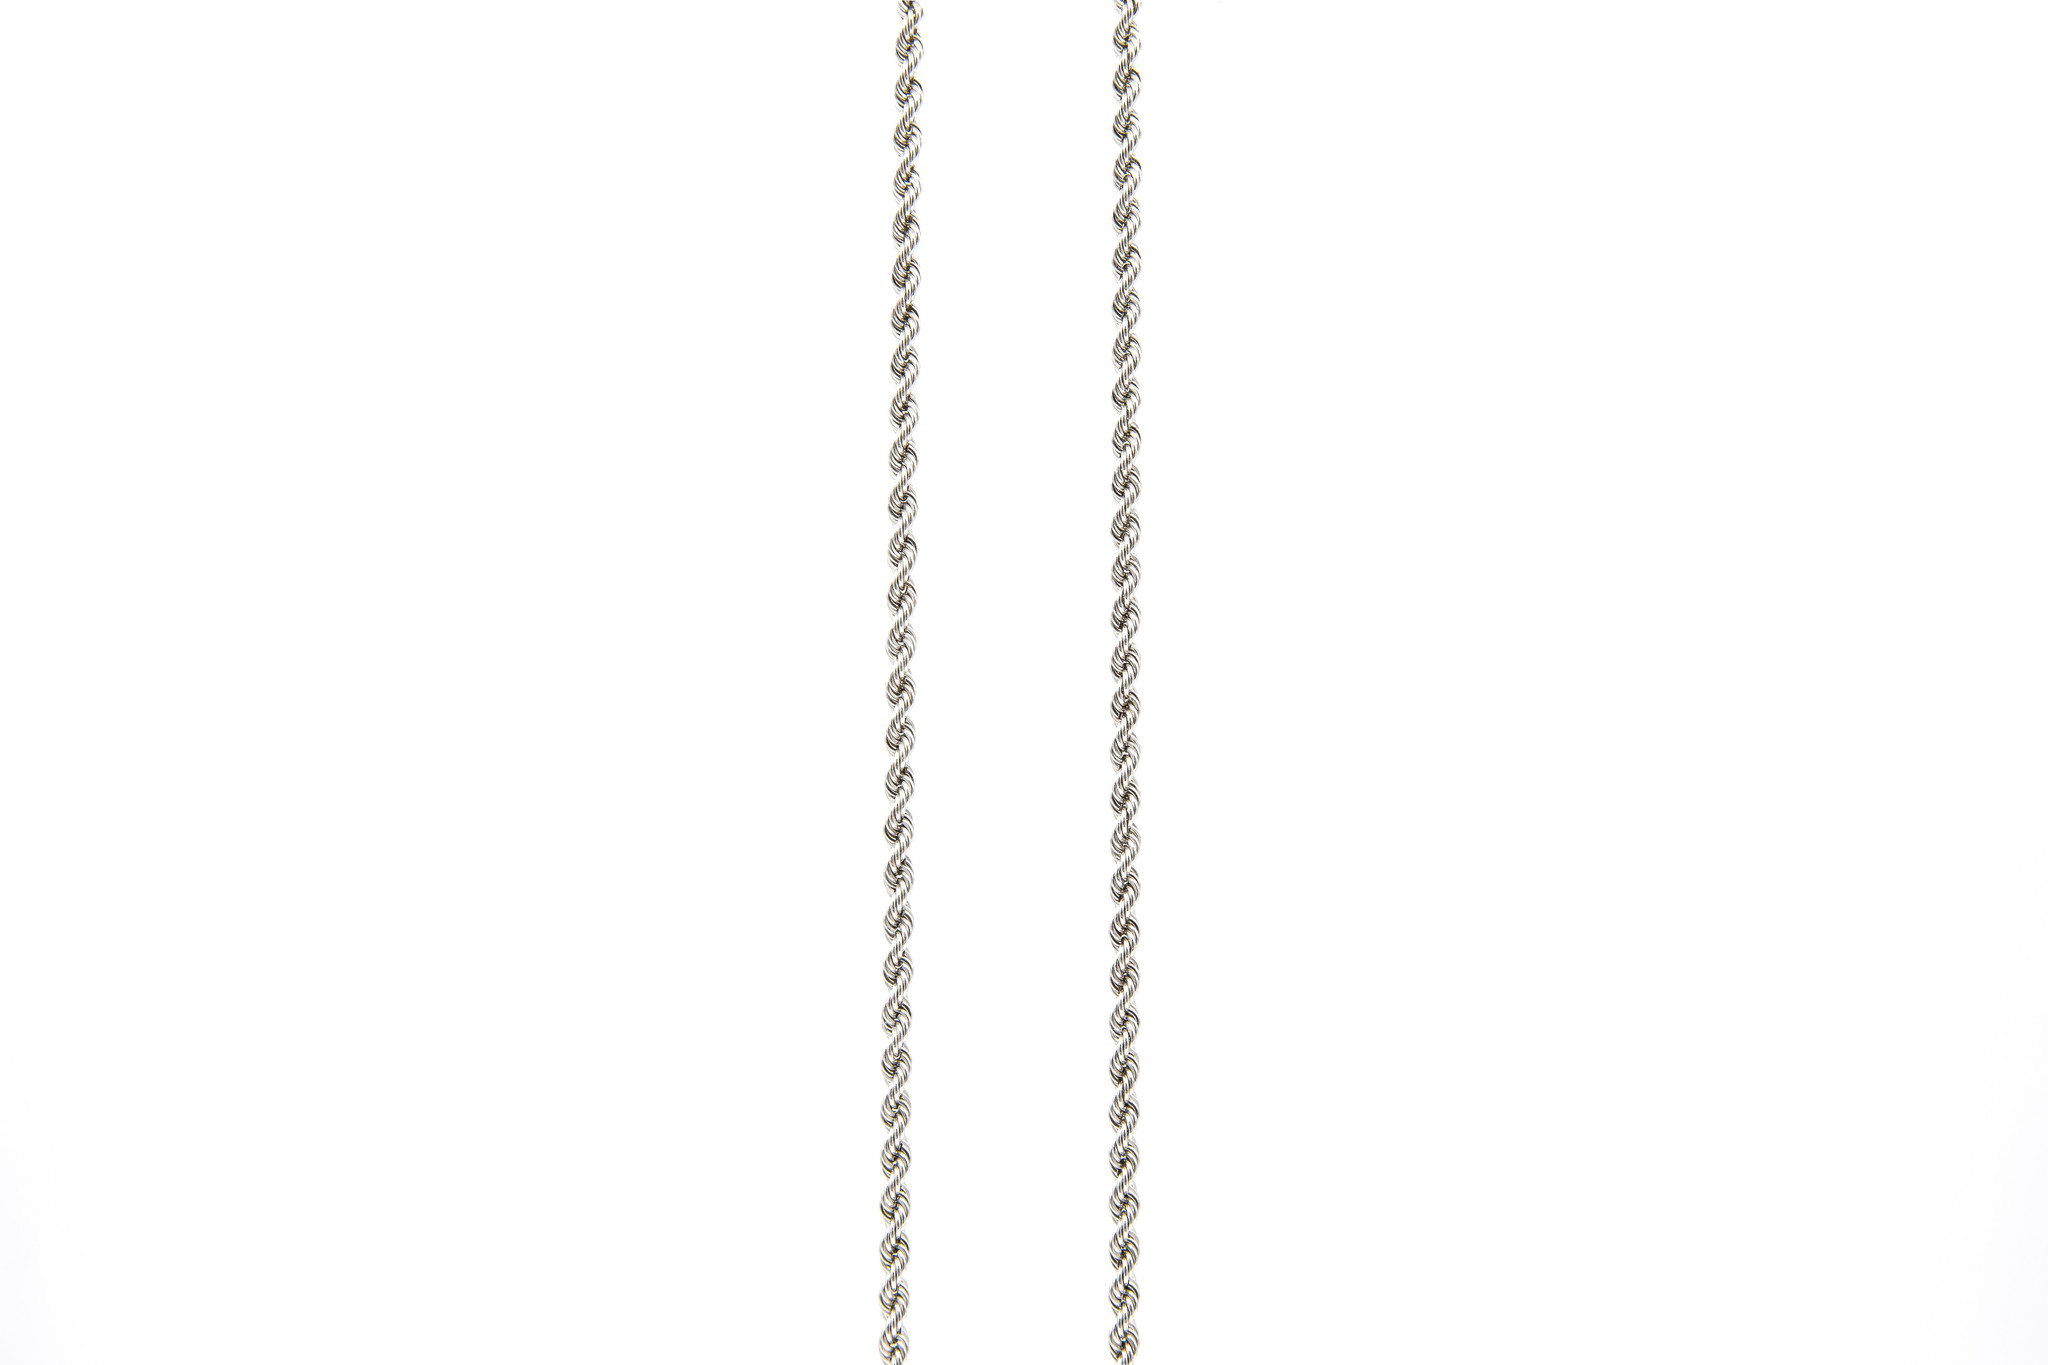 Rope chain witgoud 14kt 3mm-8